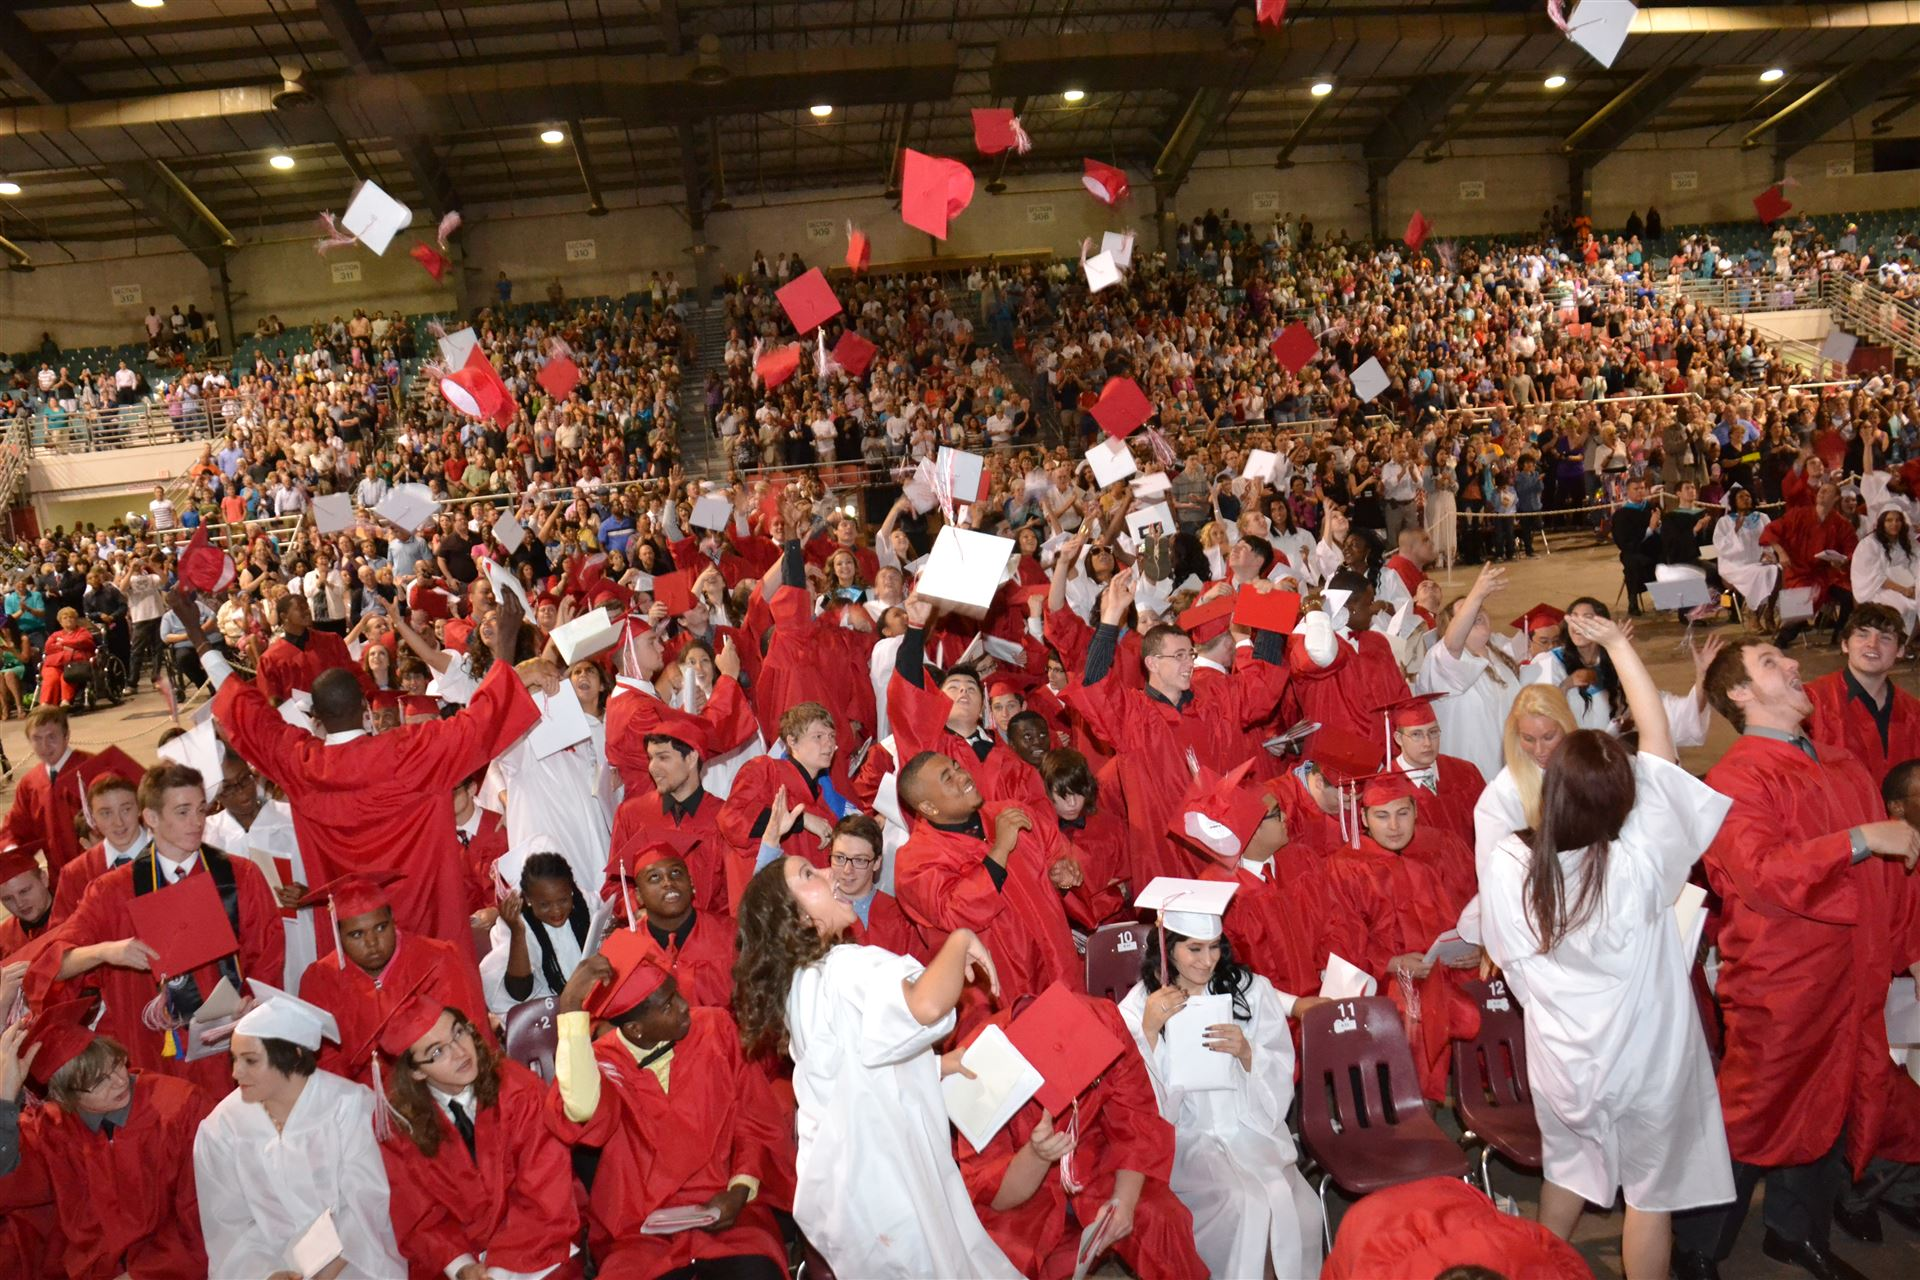 Graduation 2014 in review